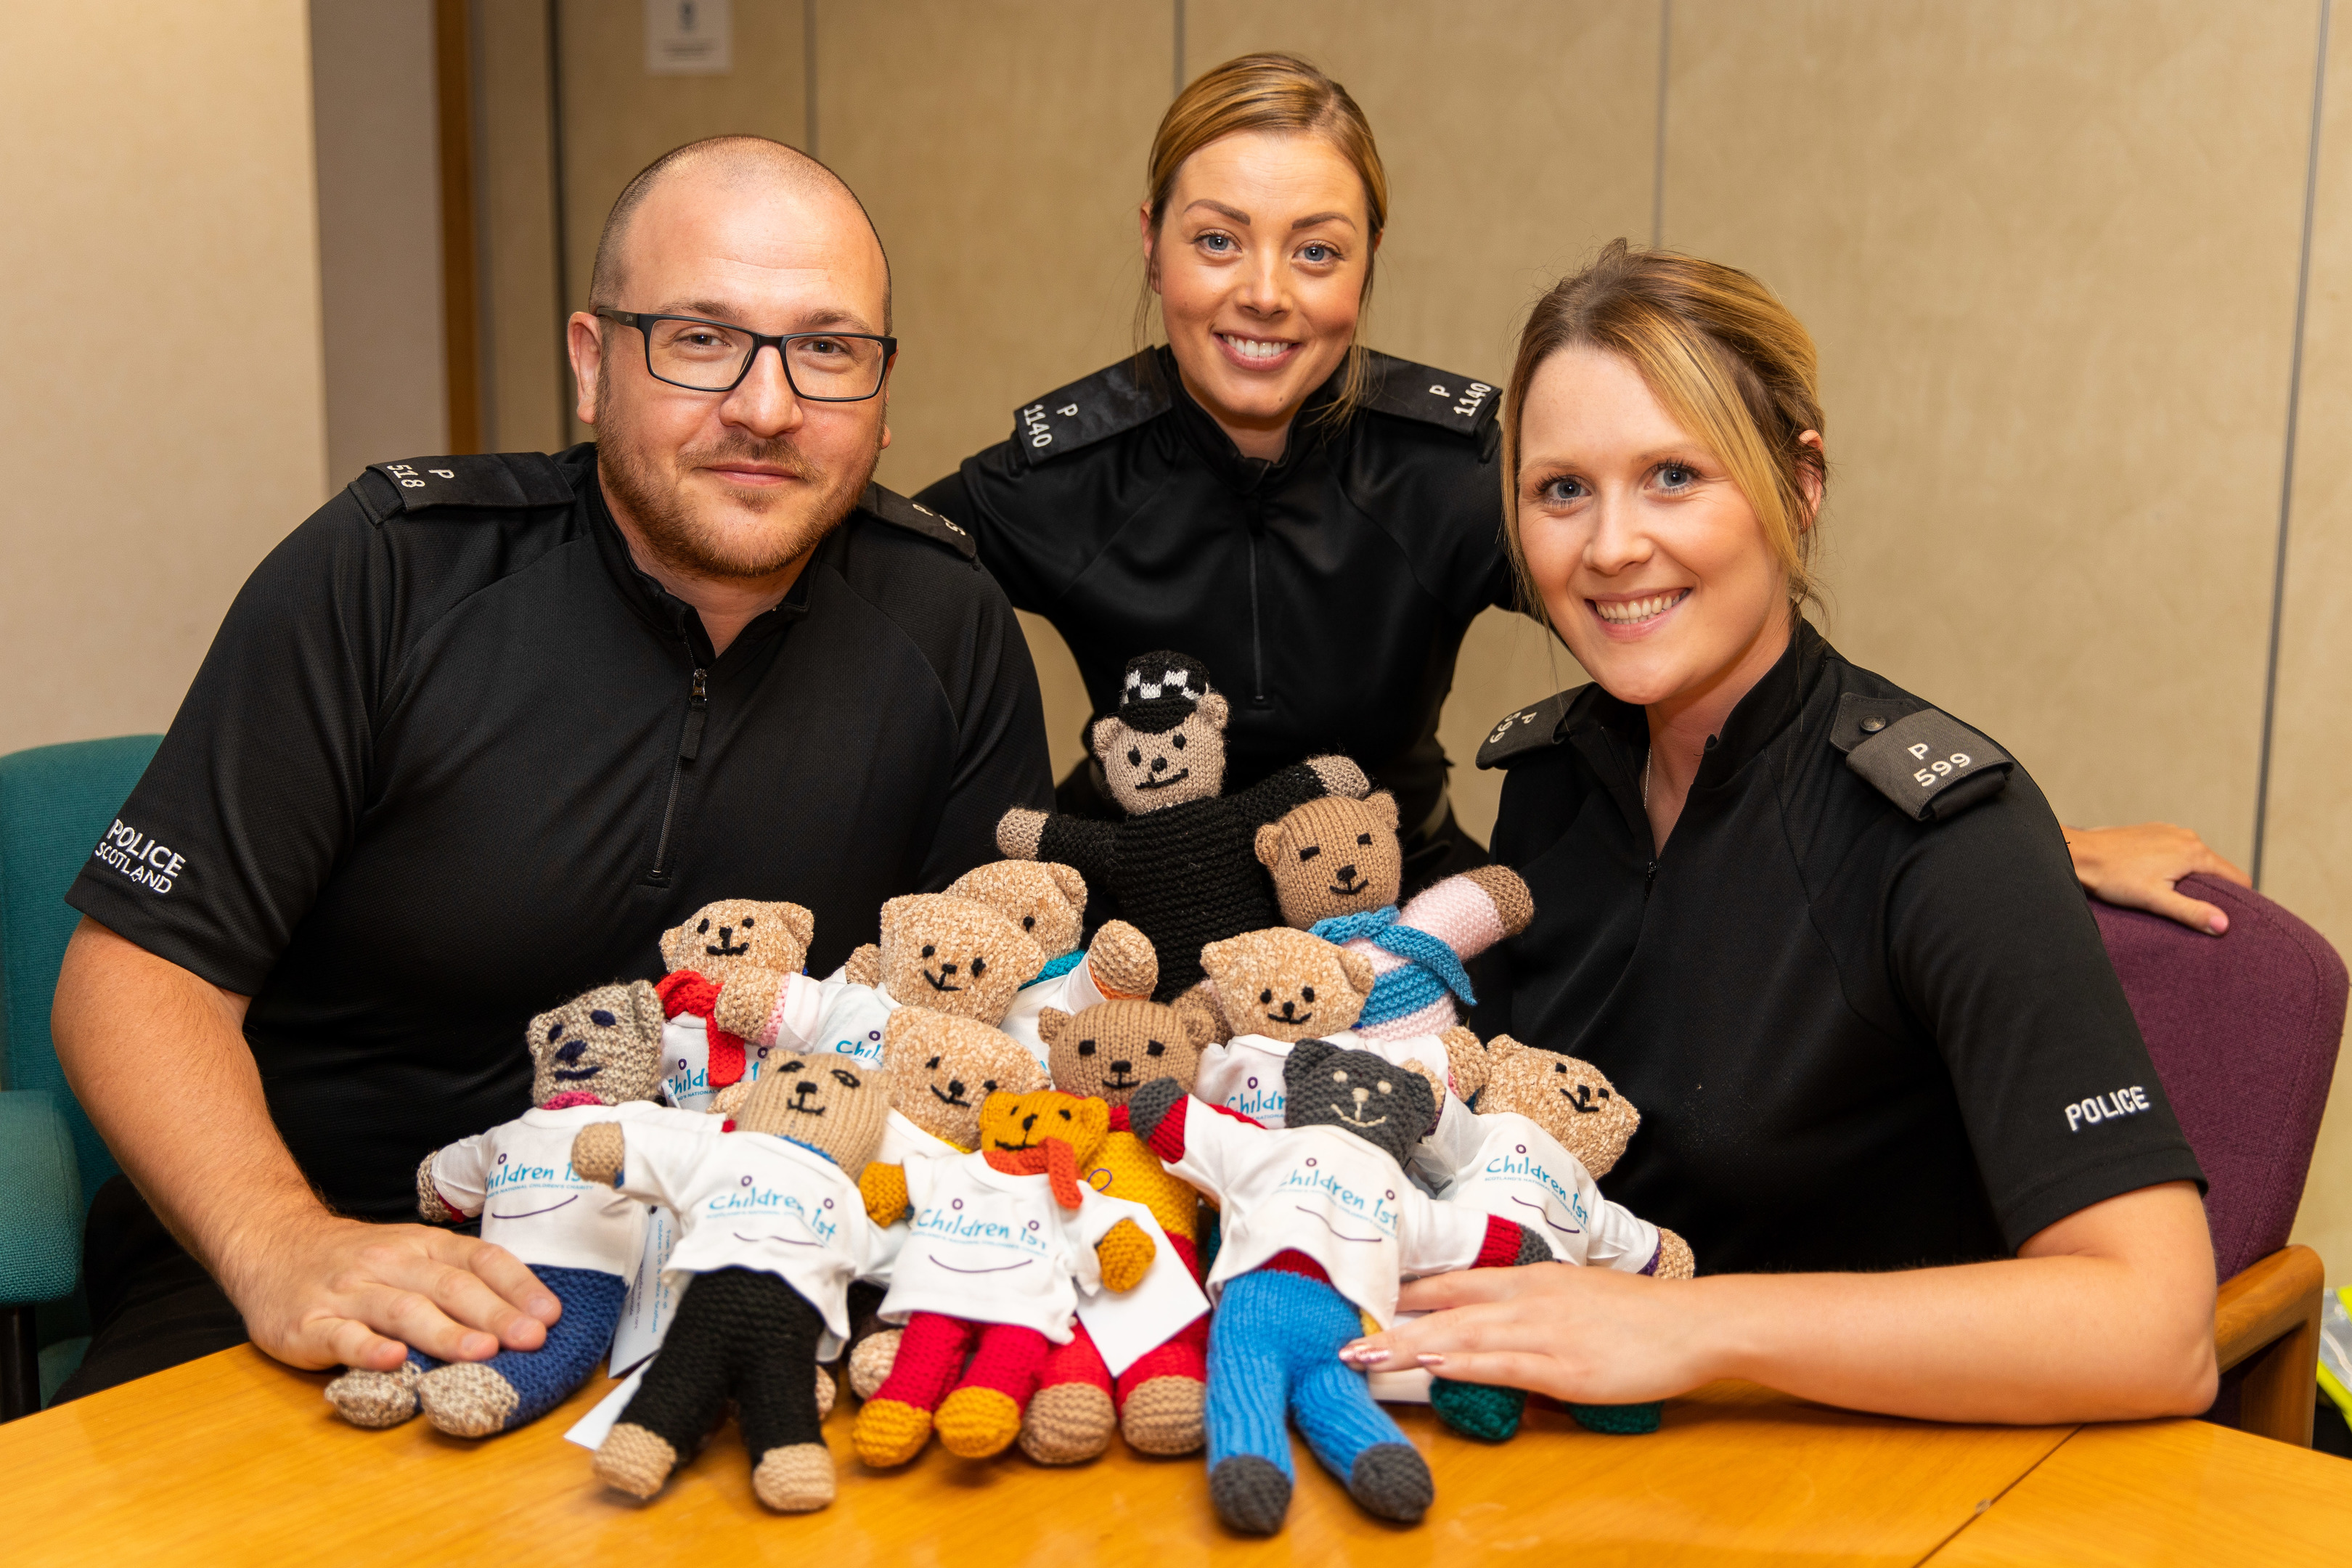 Officers Steven Piercy, Nicola Whitelaw and Brittany Primeau with the new Trauma Teddies